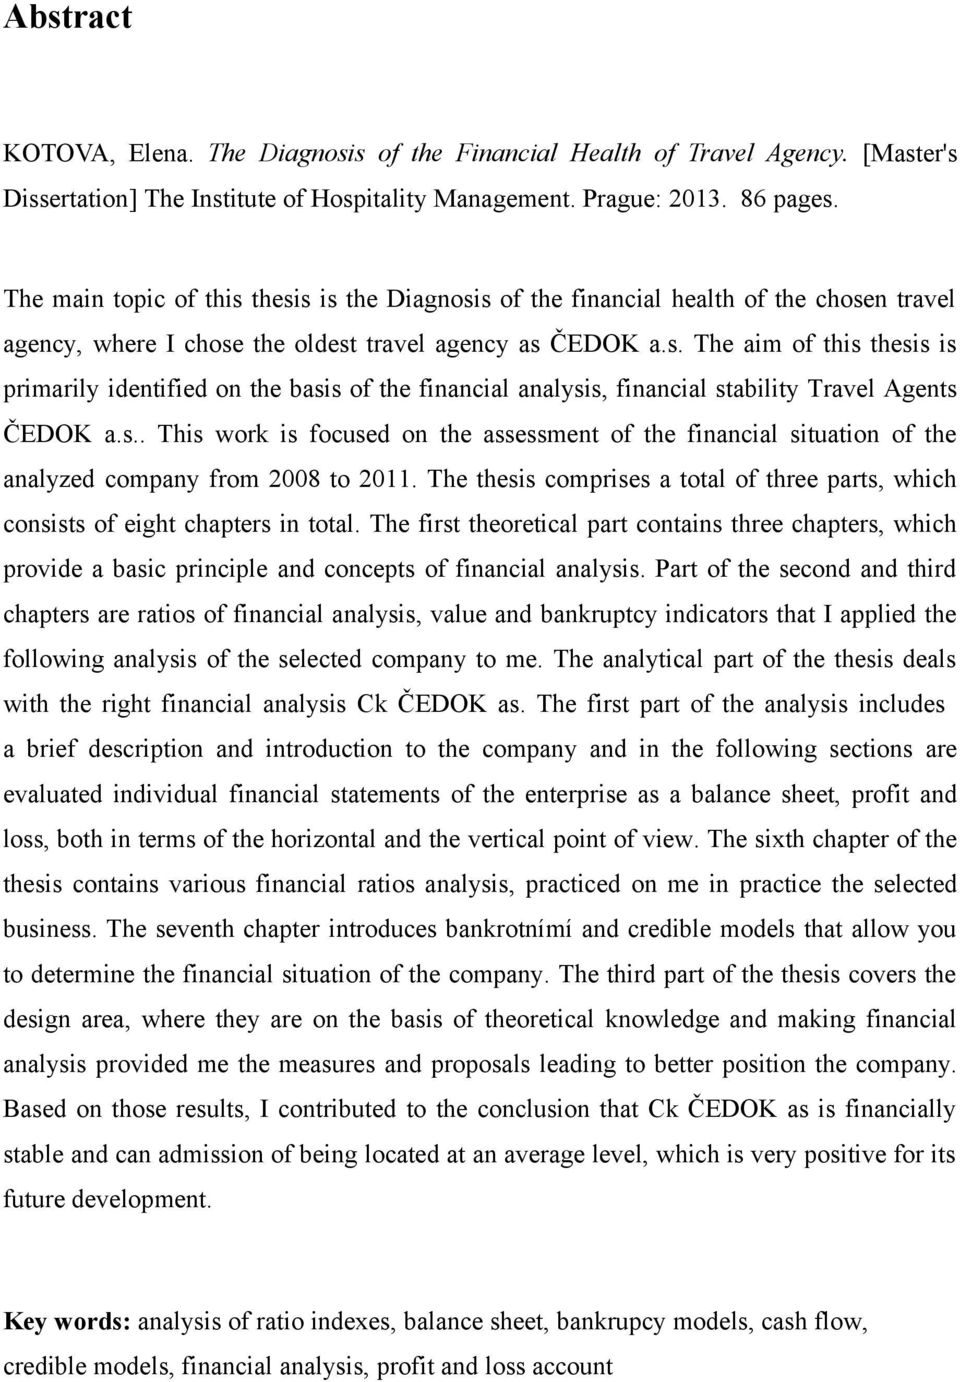 s.. This work is focused on the assessment of the financial situation of the analyzed company from 2008 to 2011. The thesis comprises a total of three parts, which consists of eight chapters in total.